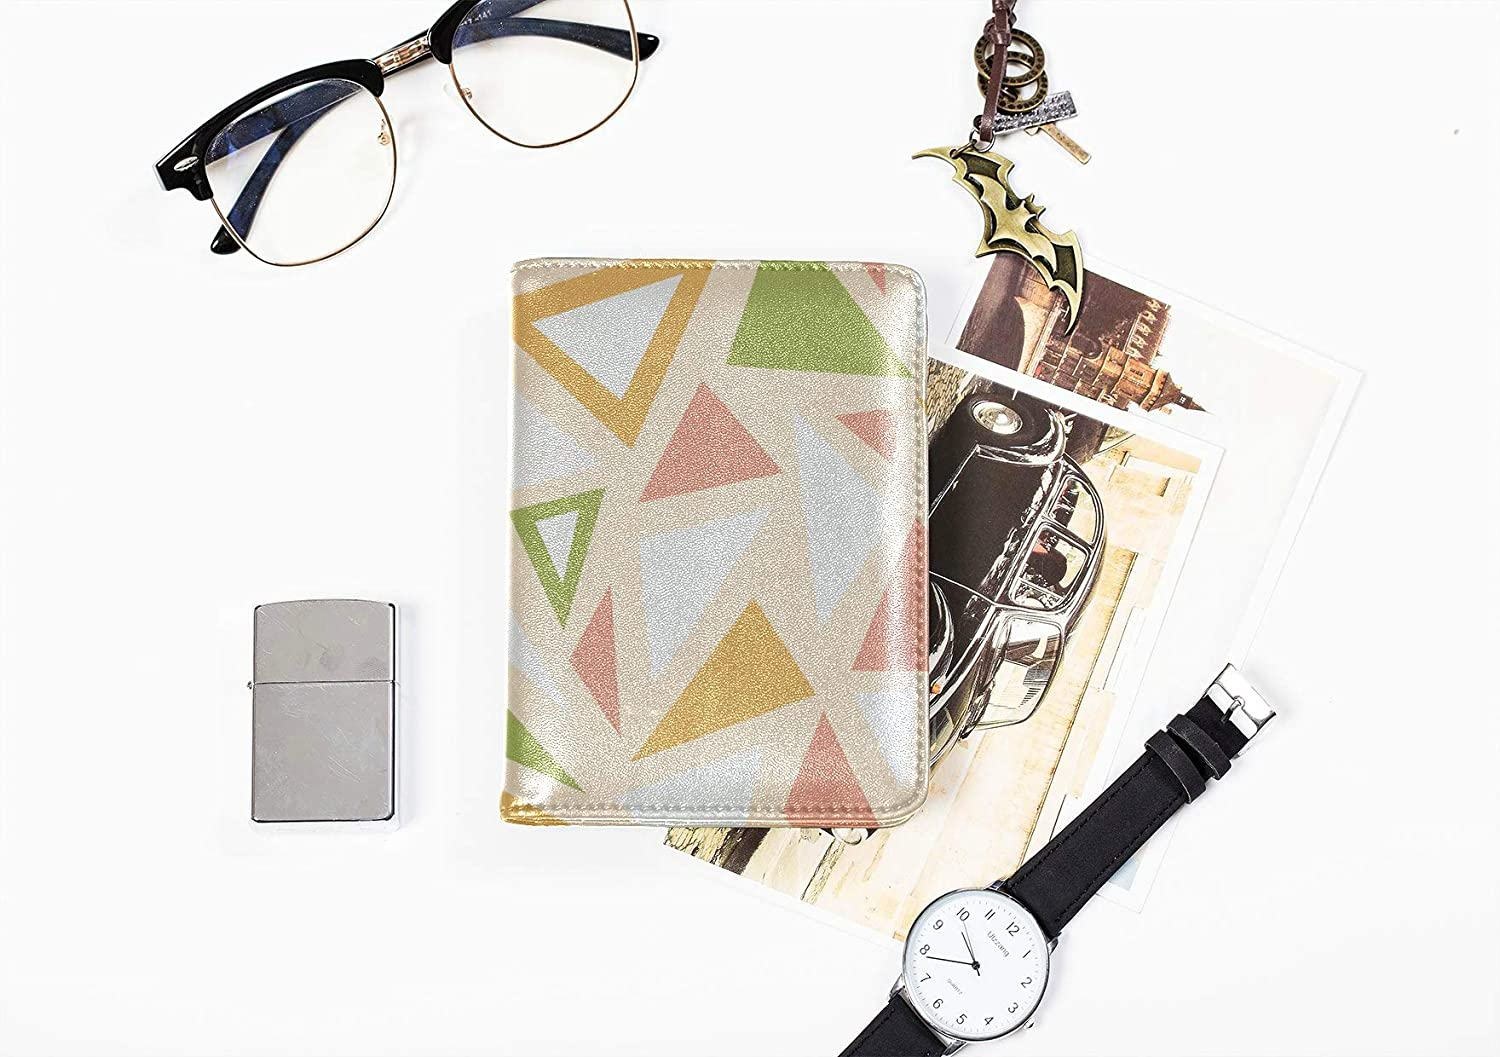 Leather Passport Cover For Women Fashion Modern Creative Triangle Case Passport Holder Multi Purpose Print Colorful Passport Cover Travel Wallets For Unisex 5.51x4.37 Inch